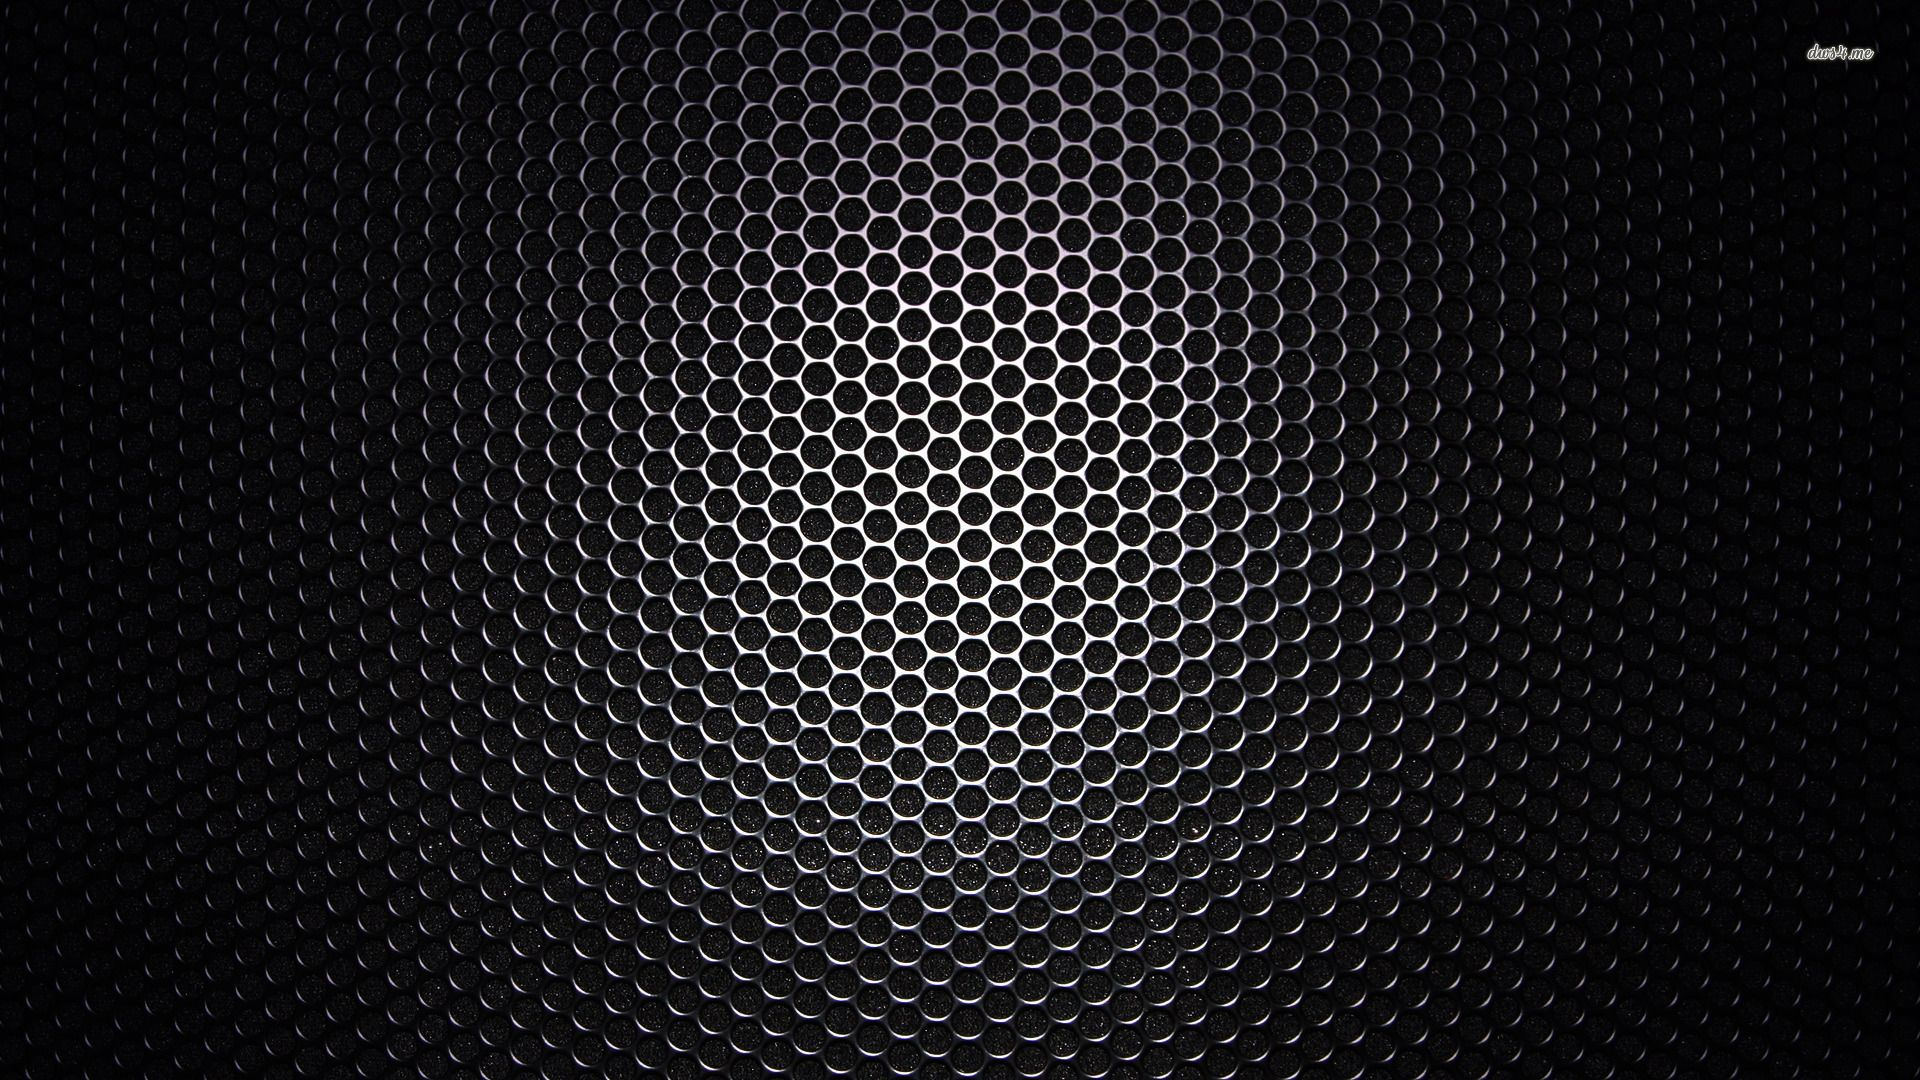 Free Download Texrura Metal Grill Texture Abstract Jpg Wallpaper Pageresource Com Black Wallpaper Iphone Iphone Wallpaper Images Dark Wallpaper